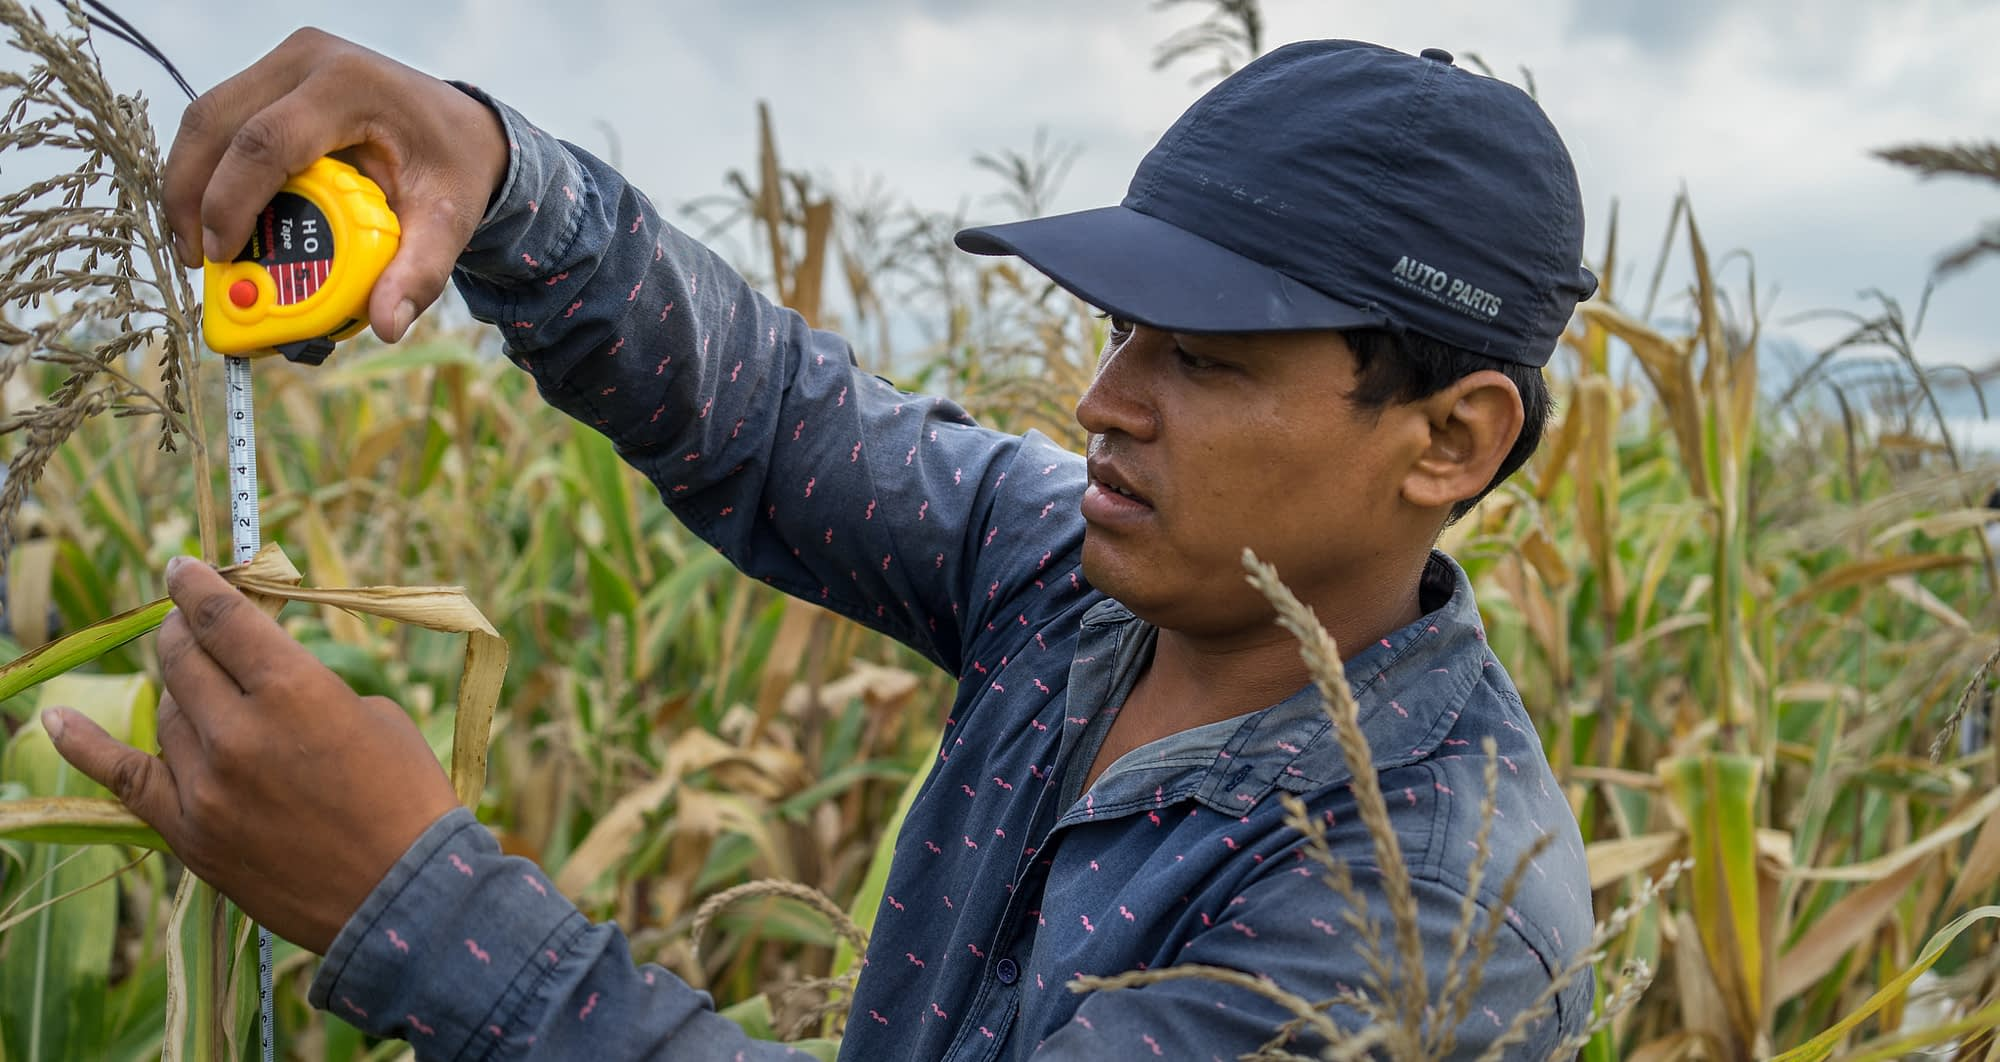 CIMMYT field research technician Pradip Chaudhary measures plant height in Bhuyera, Kailali, Nepal. (Photo: P. Lowe/CIMMYT)